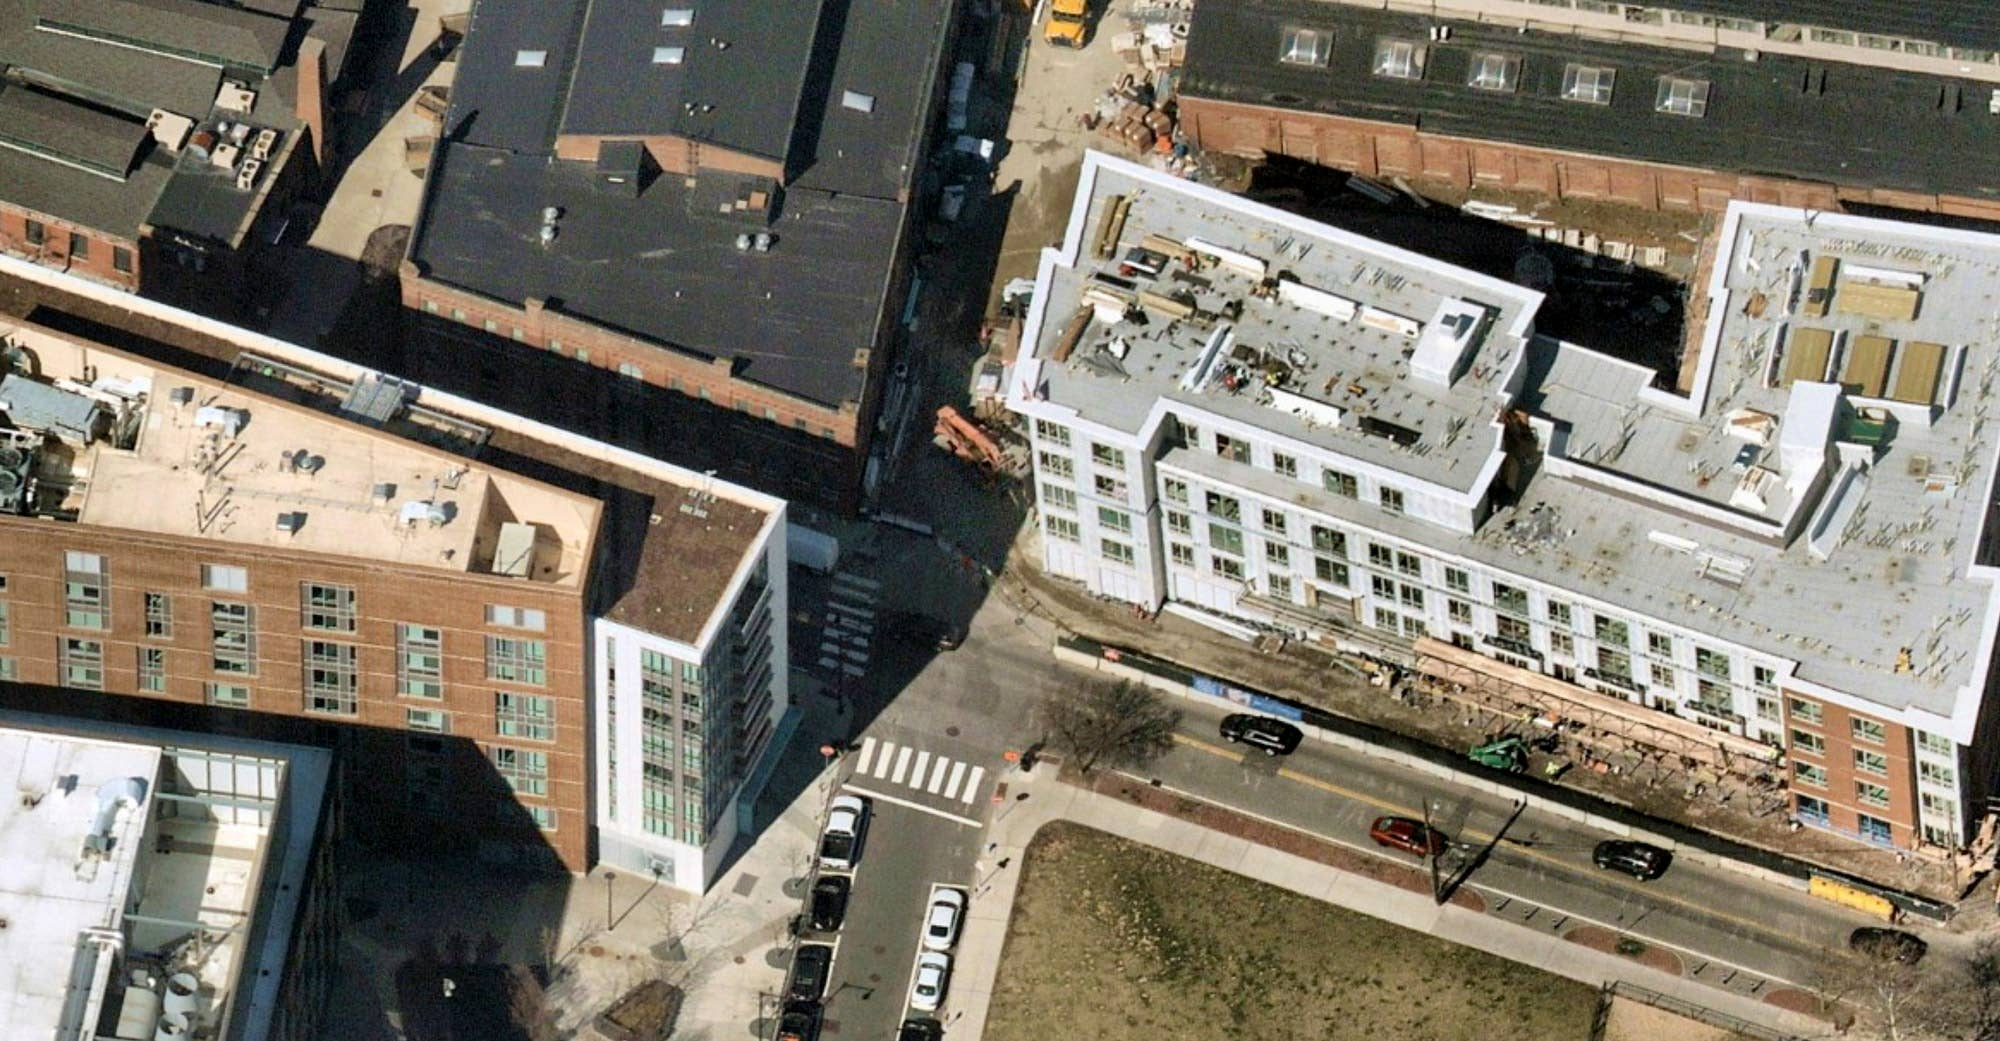 Oblique aerial photo of post-infrastructure upgrade construction on 249 Third Street, Cambridge, MA - 11 April 2019